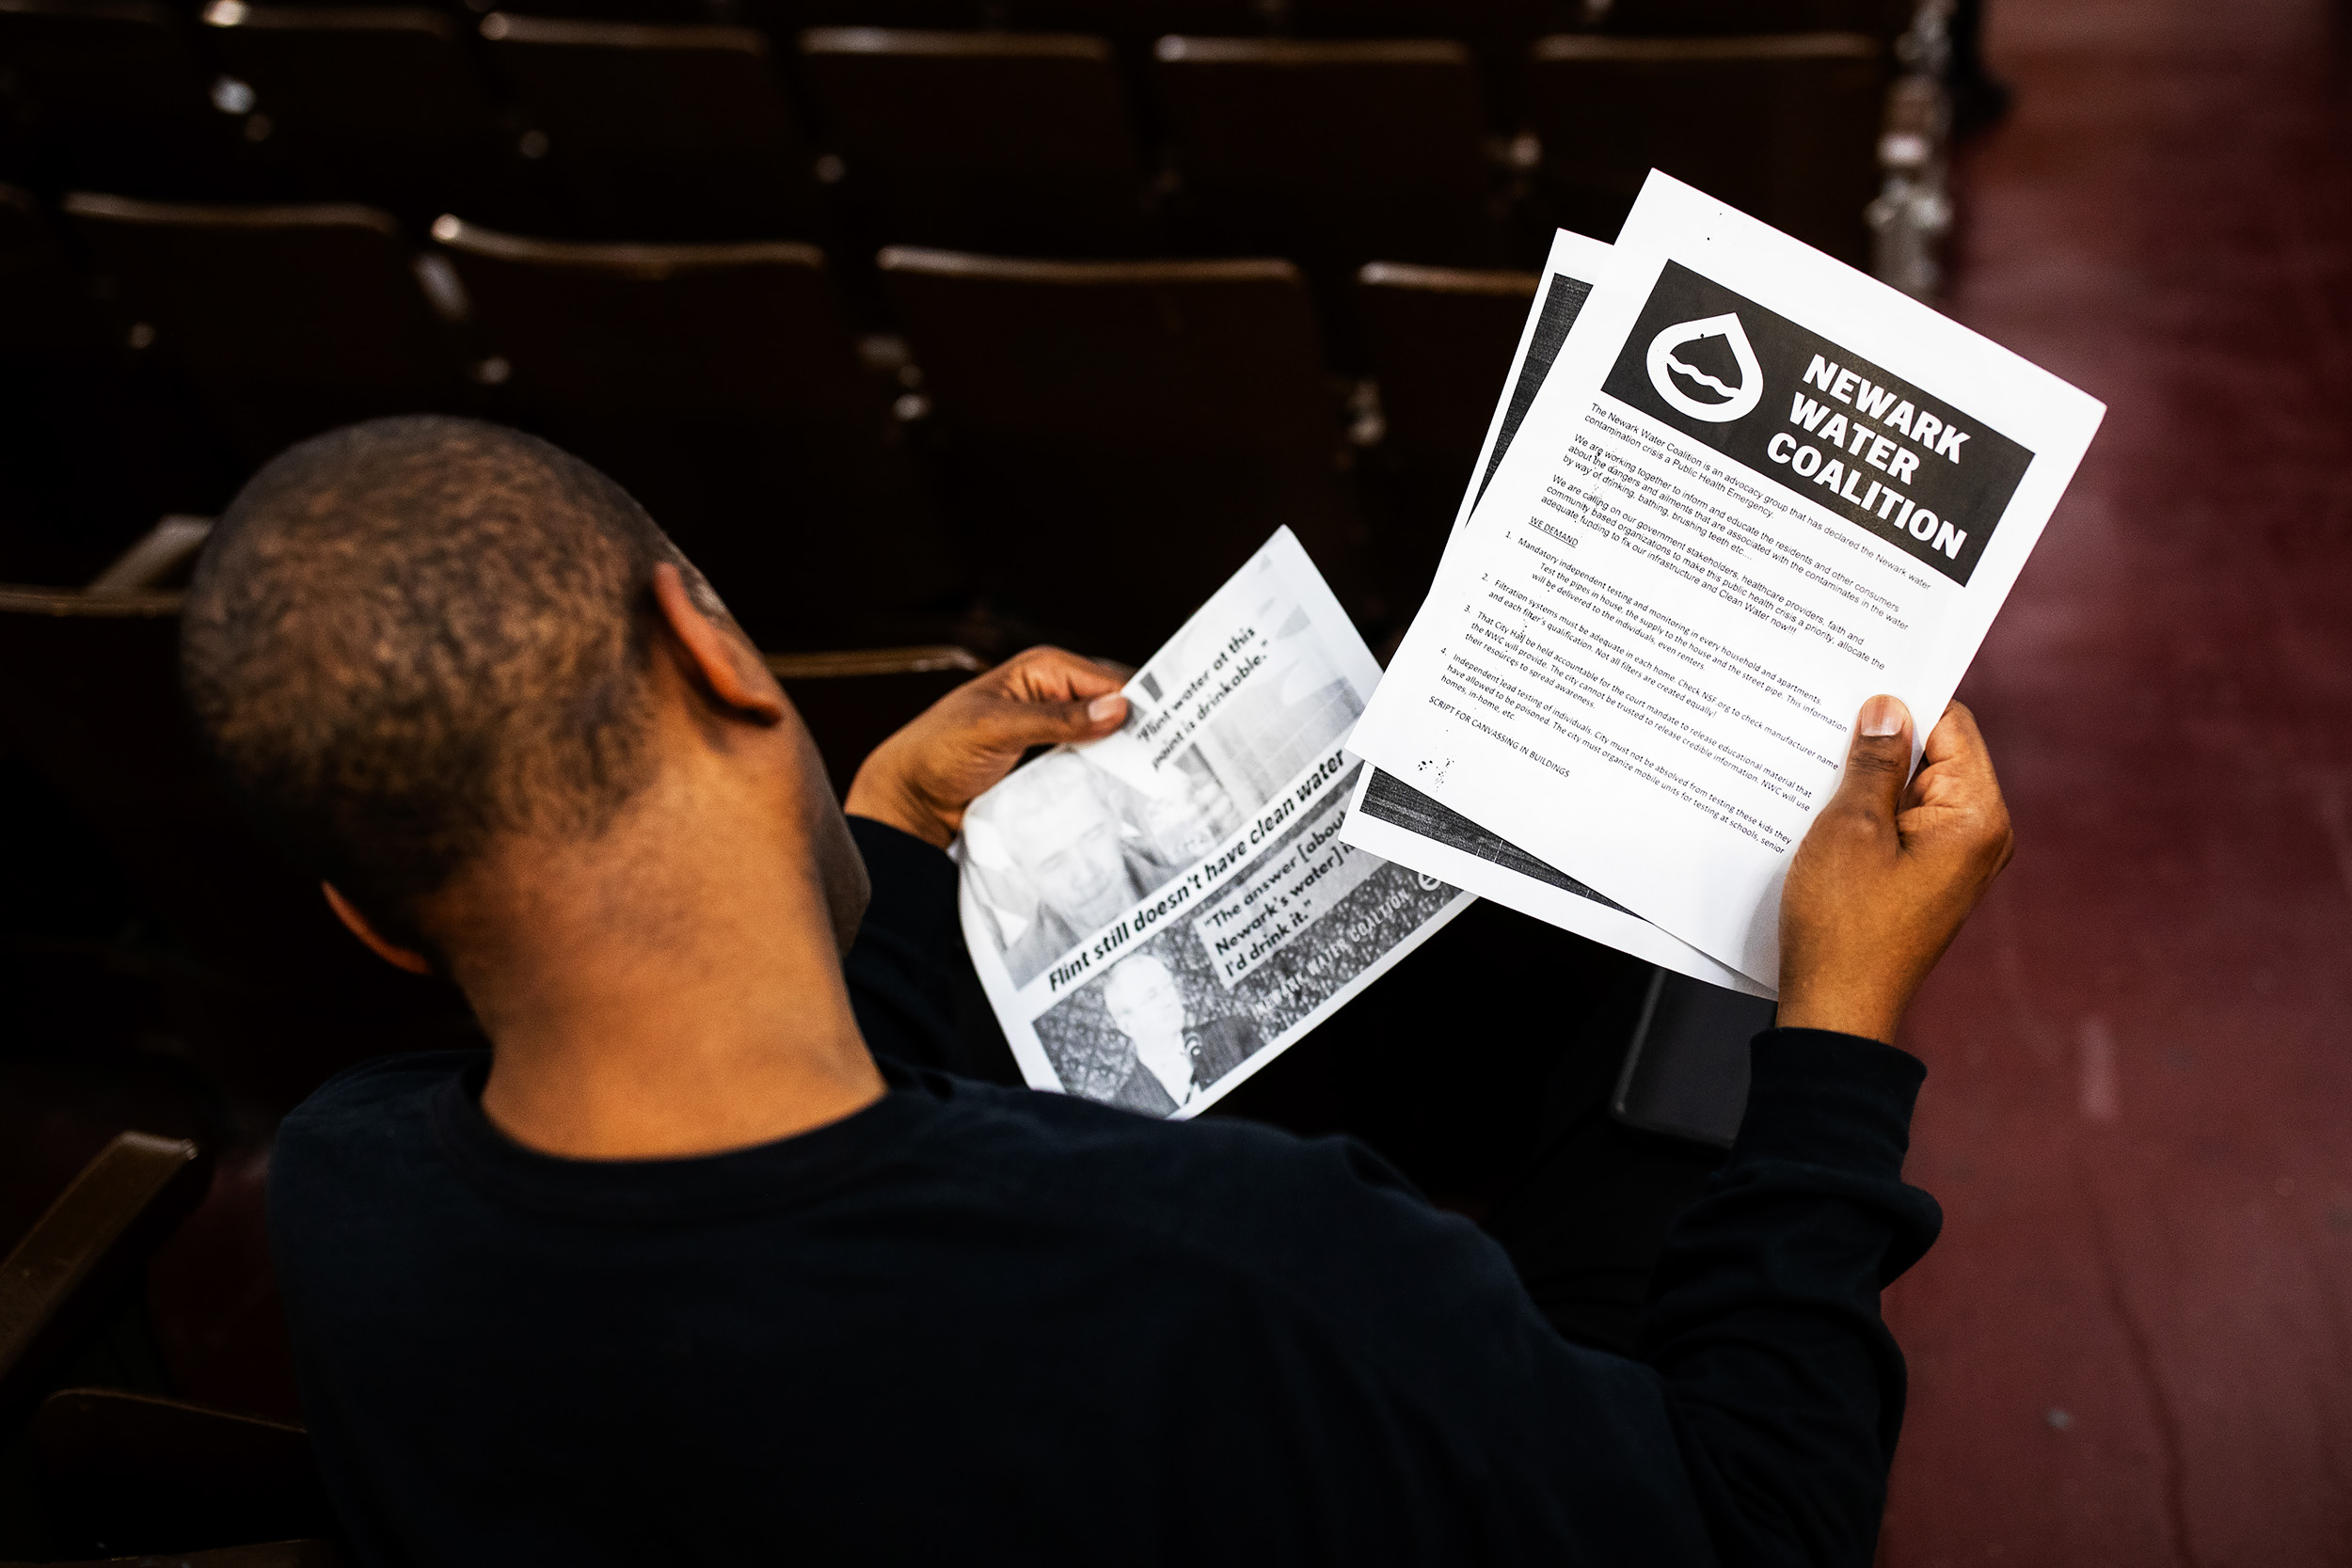 Residents look over handout materials and listen to presentations.